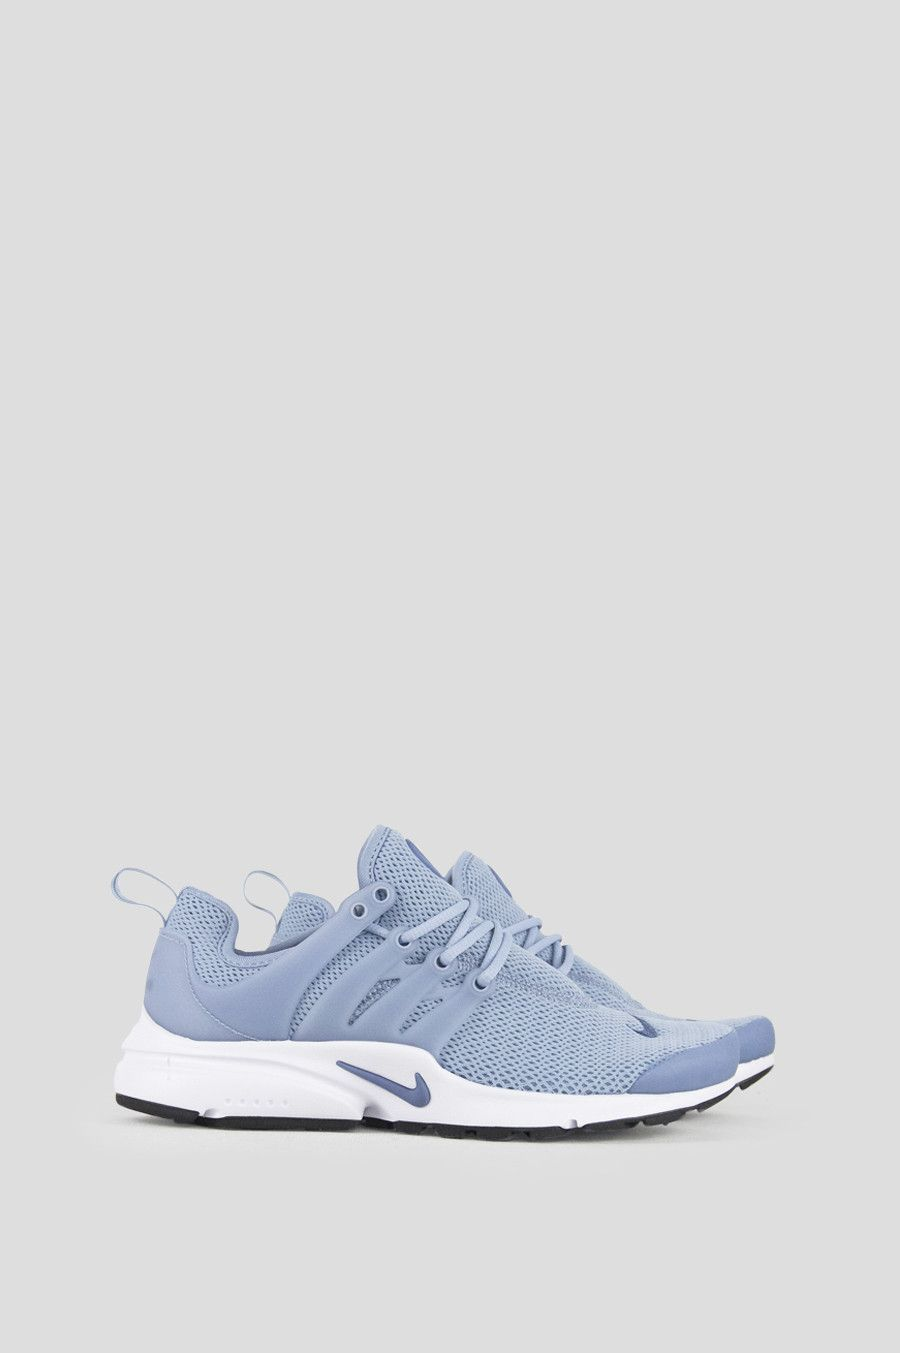 The Nike Air Presto Women's Shoe is inspired by the comfort and